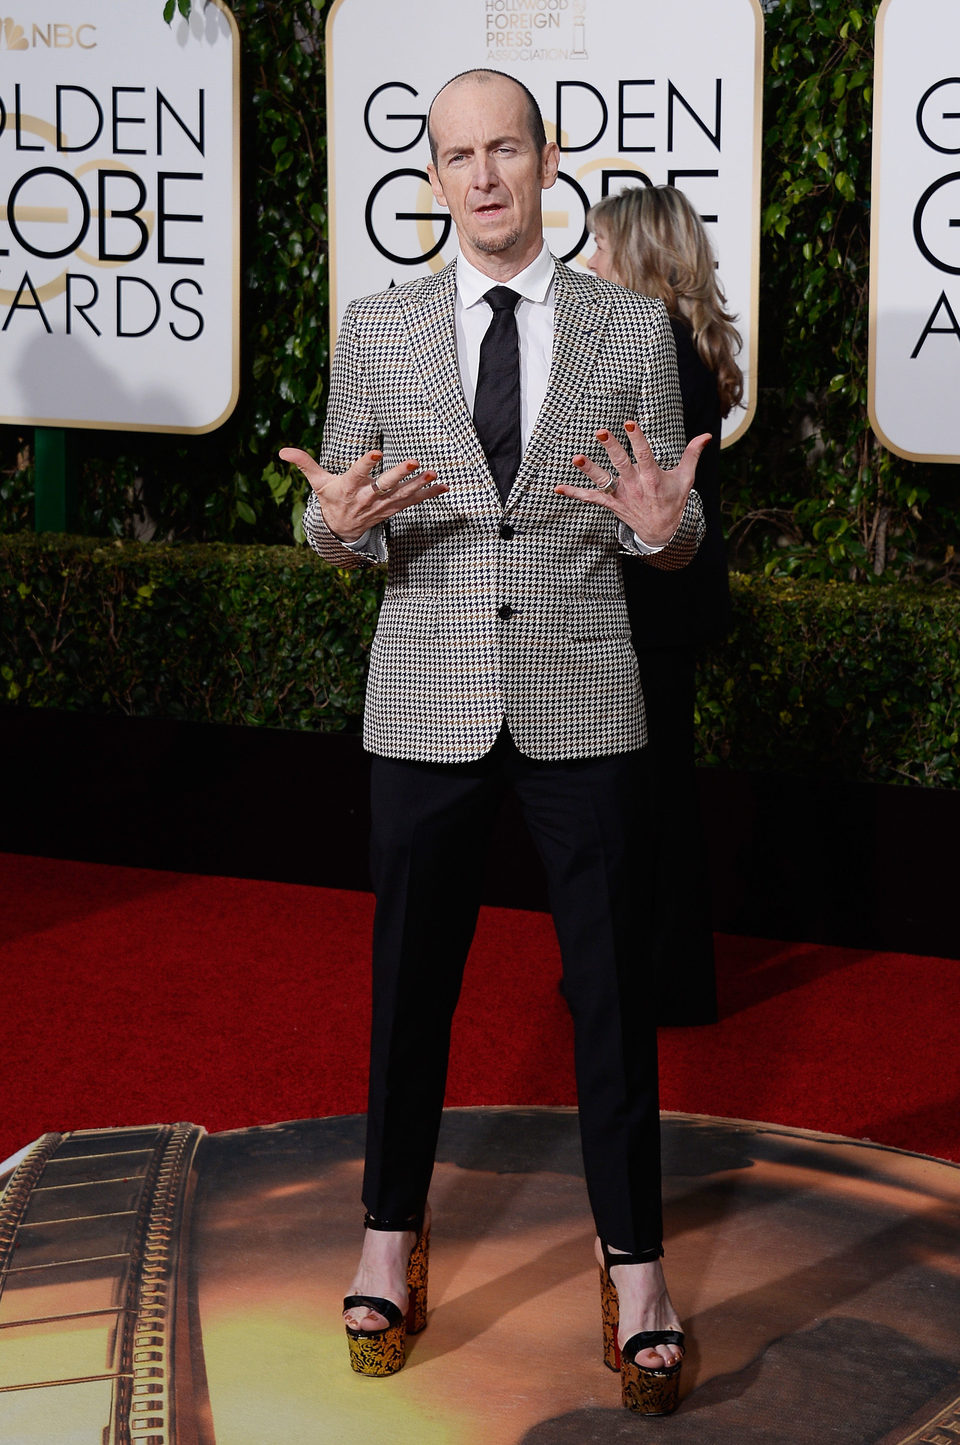 Denis O'Hare at the 2016 Golden Globes red carpet